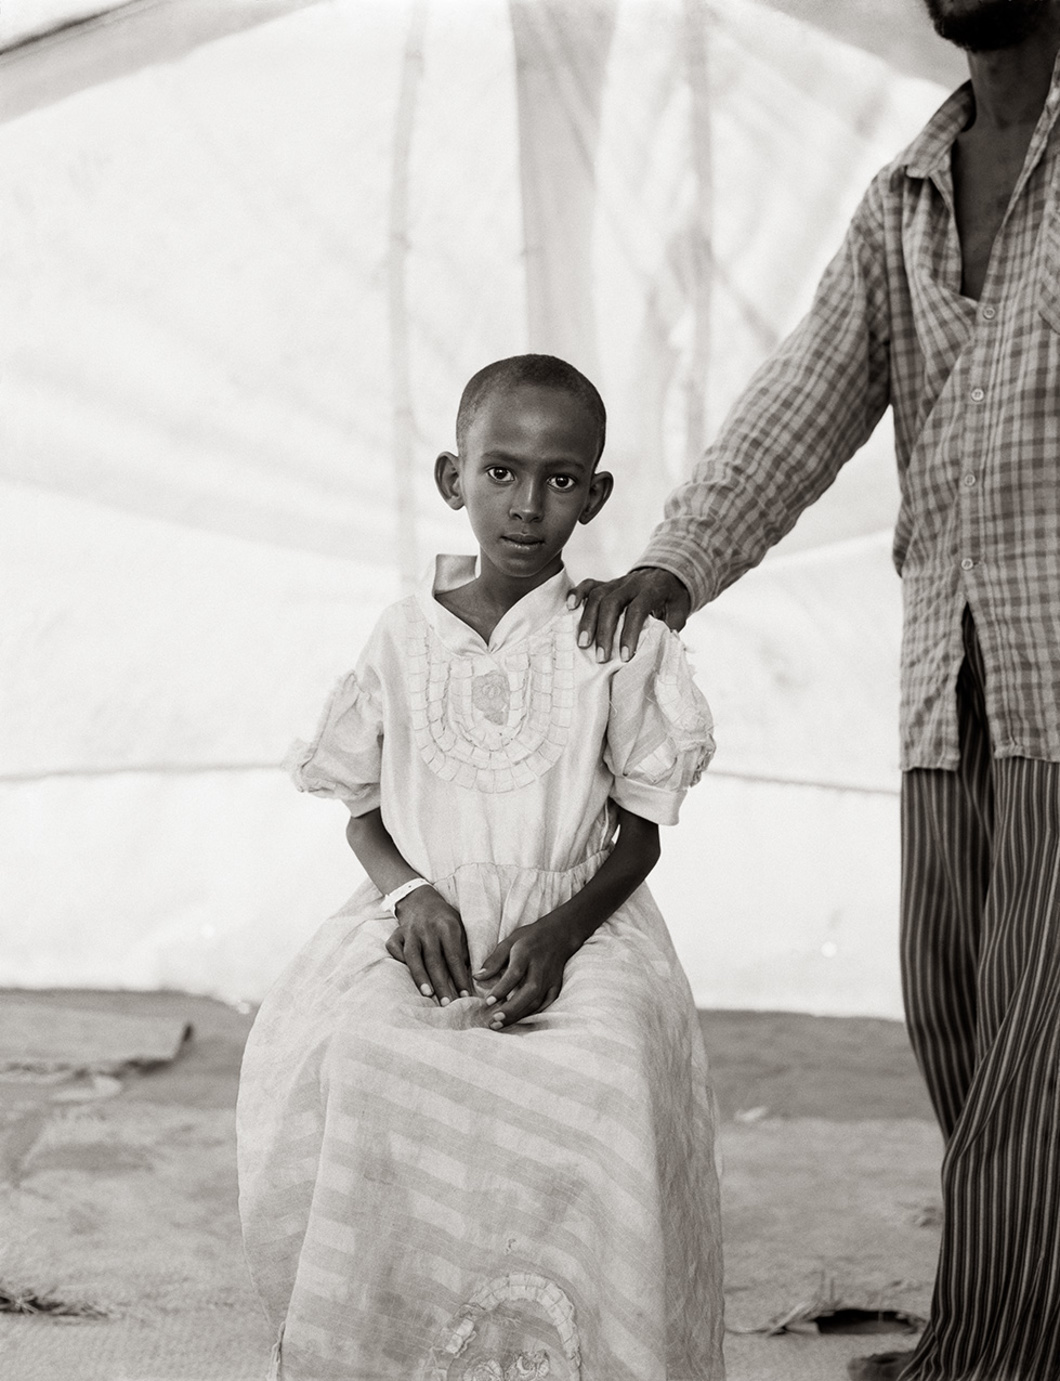 Common Ground: Photographs by Fazal Sheikh, 1989 - 2013